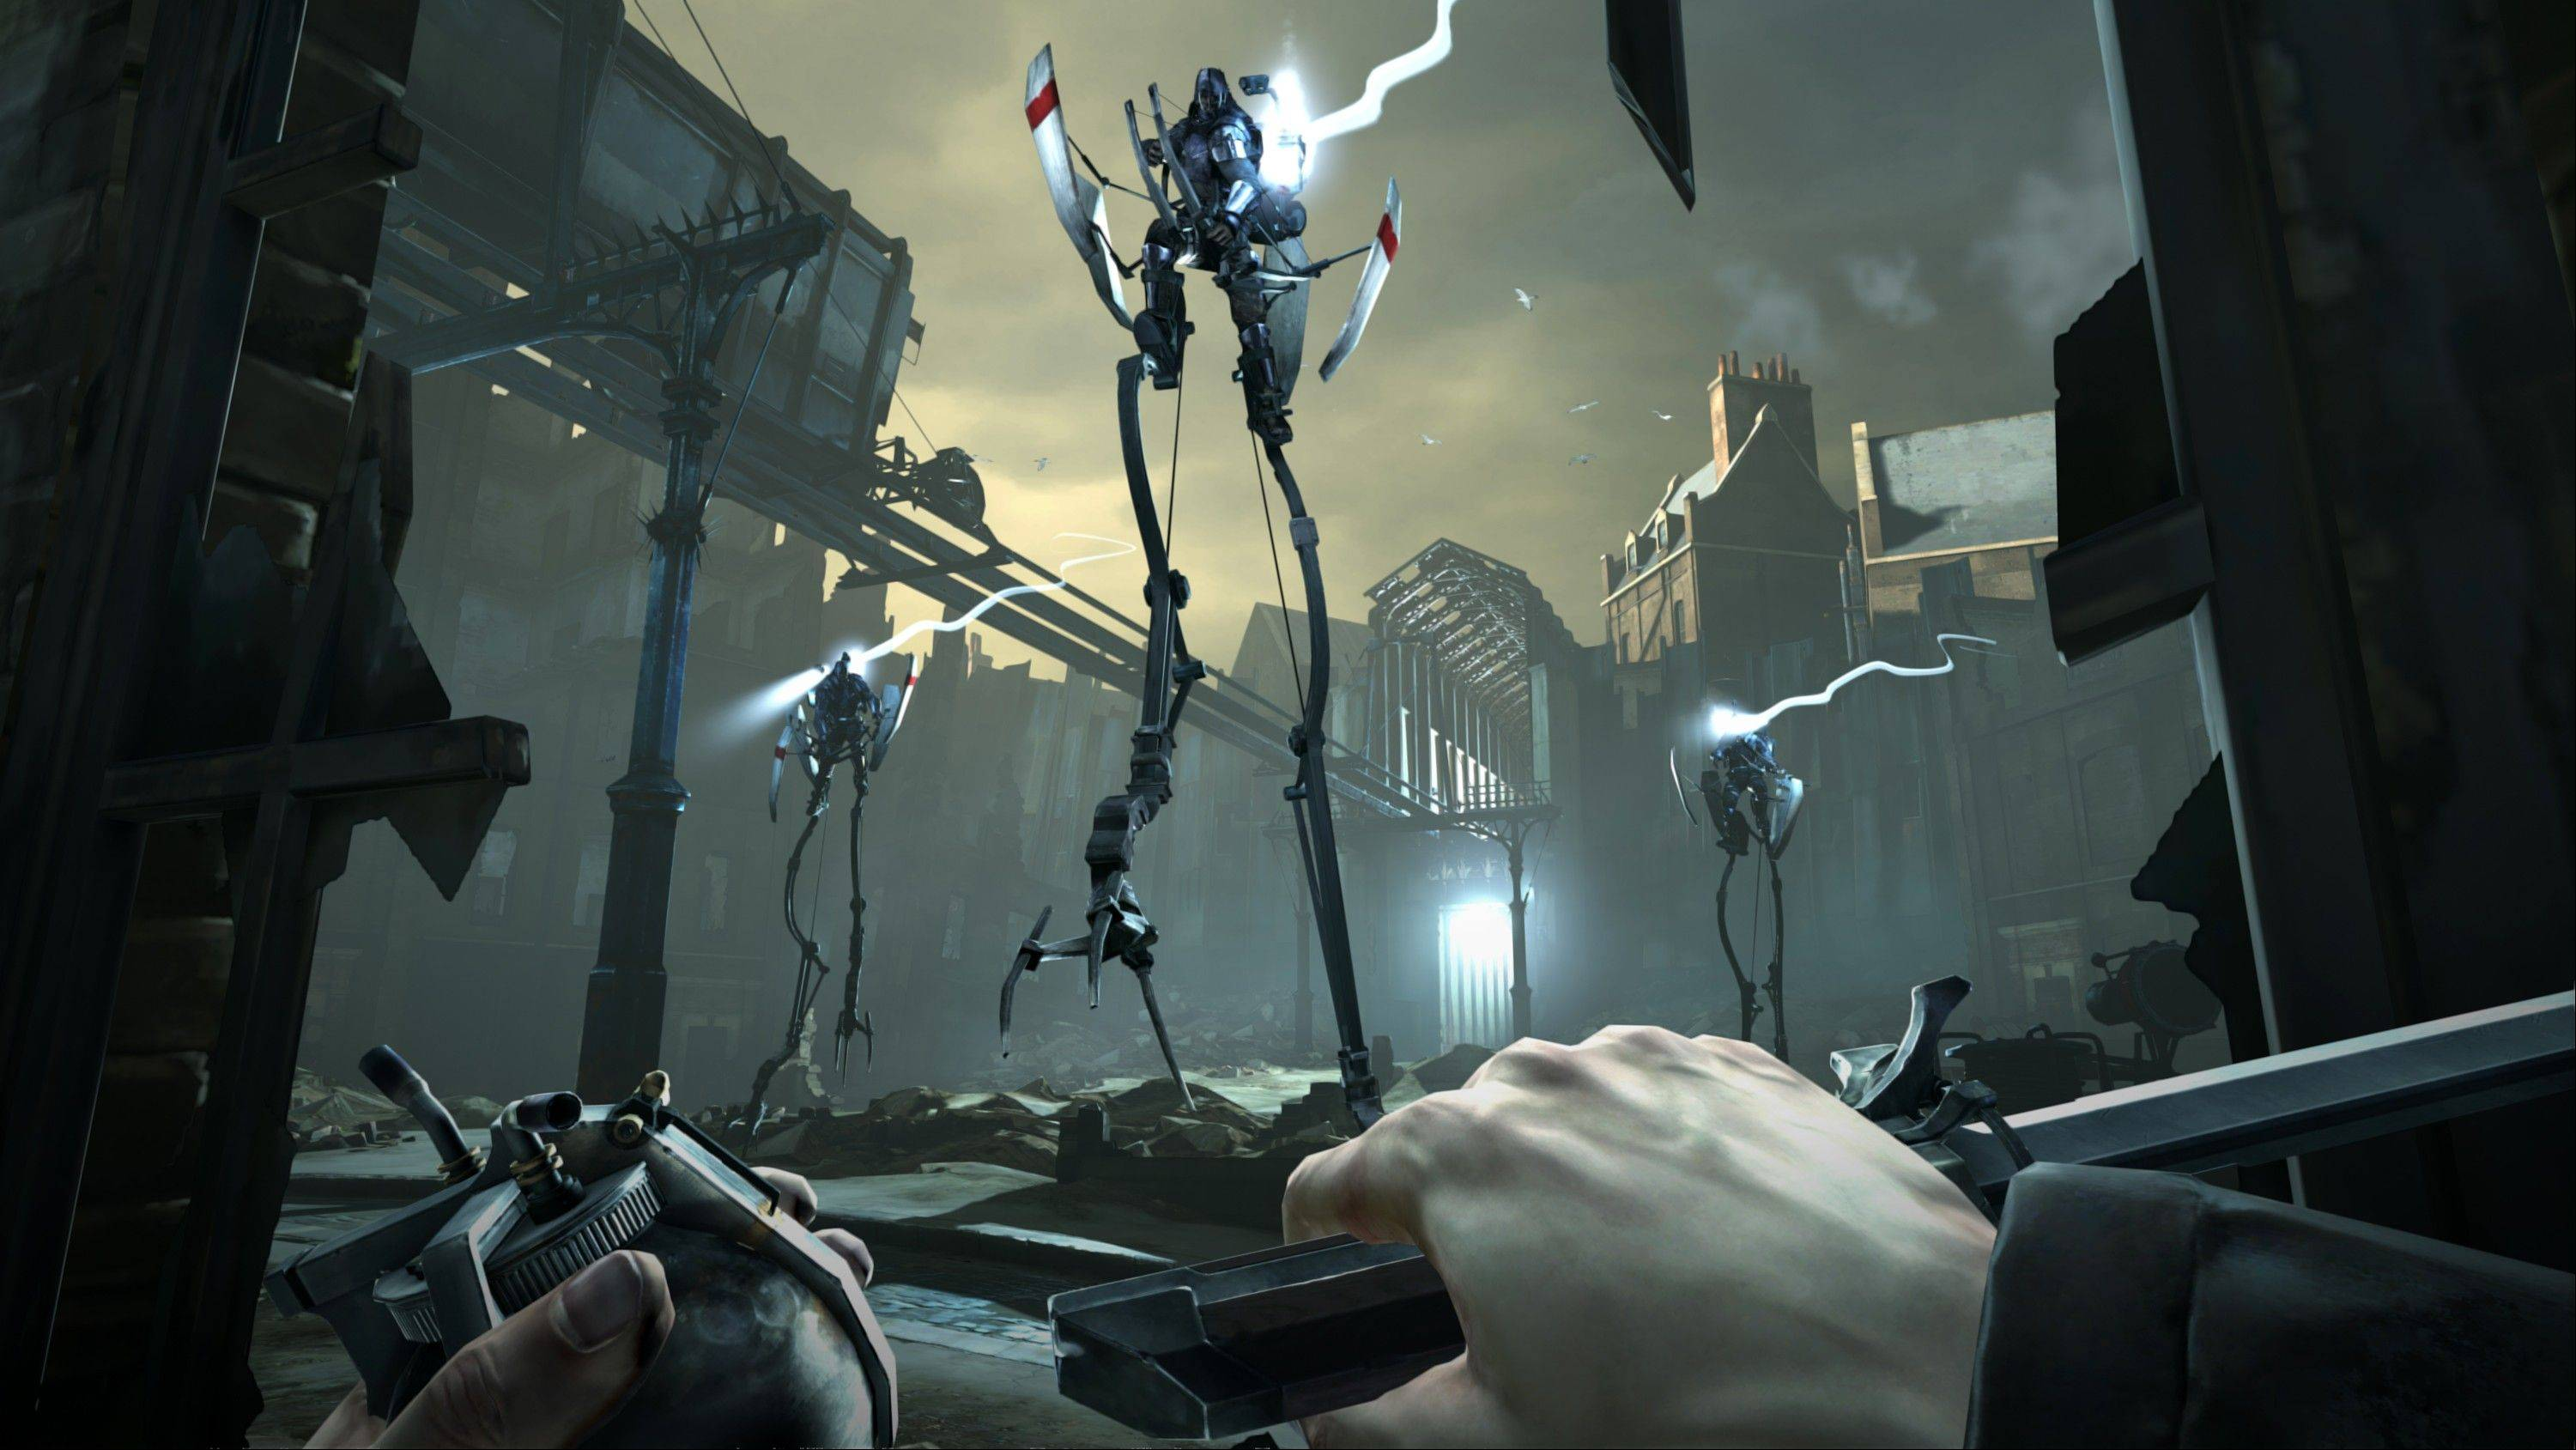 """Dishonored"" doesn't follow industry trends, which is what makes it one of the year's finest games."